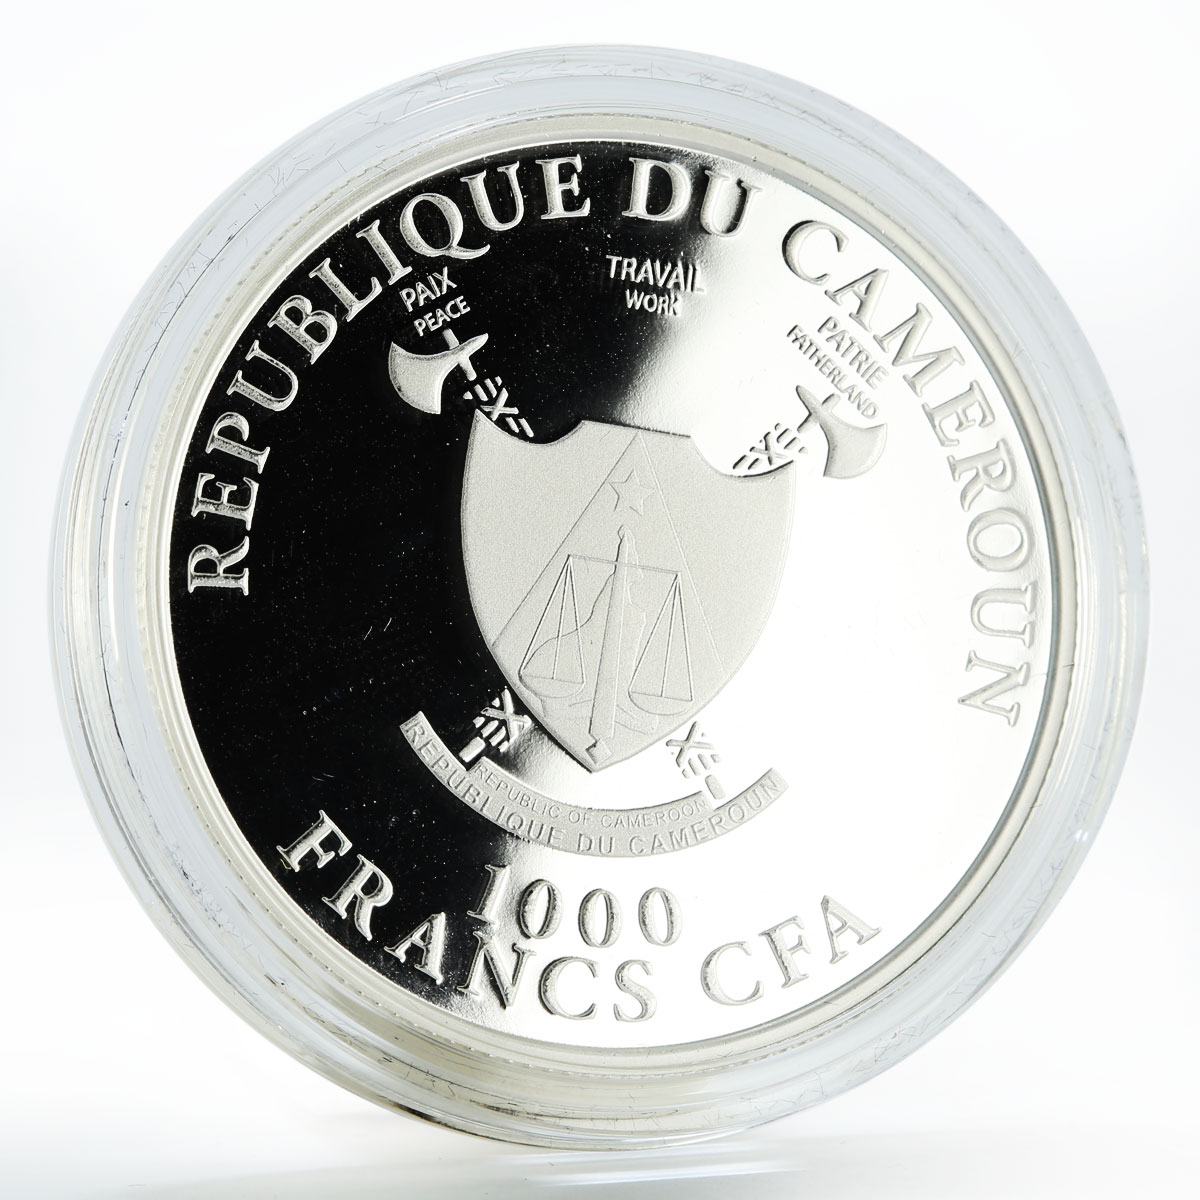 Cameroon 1000 francs Year of the Dragon gilded silver coin 2012